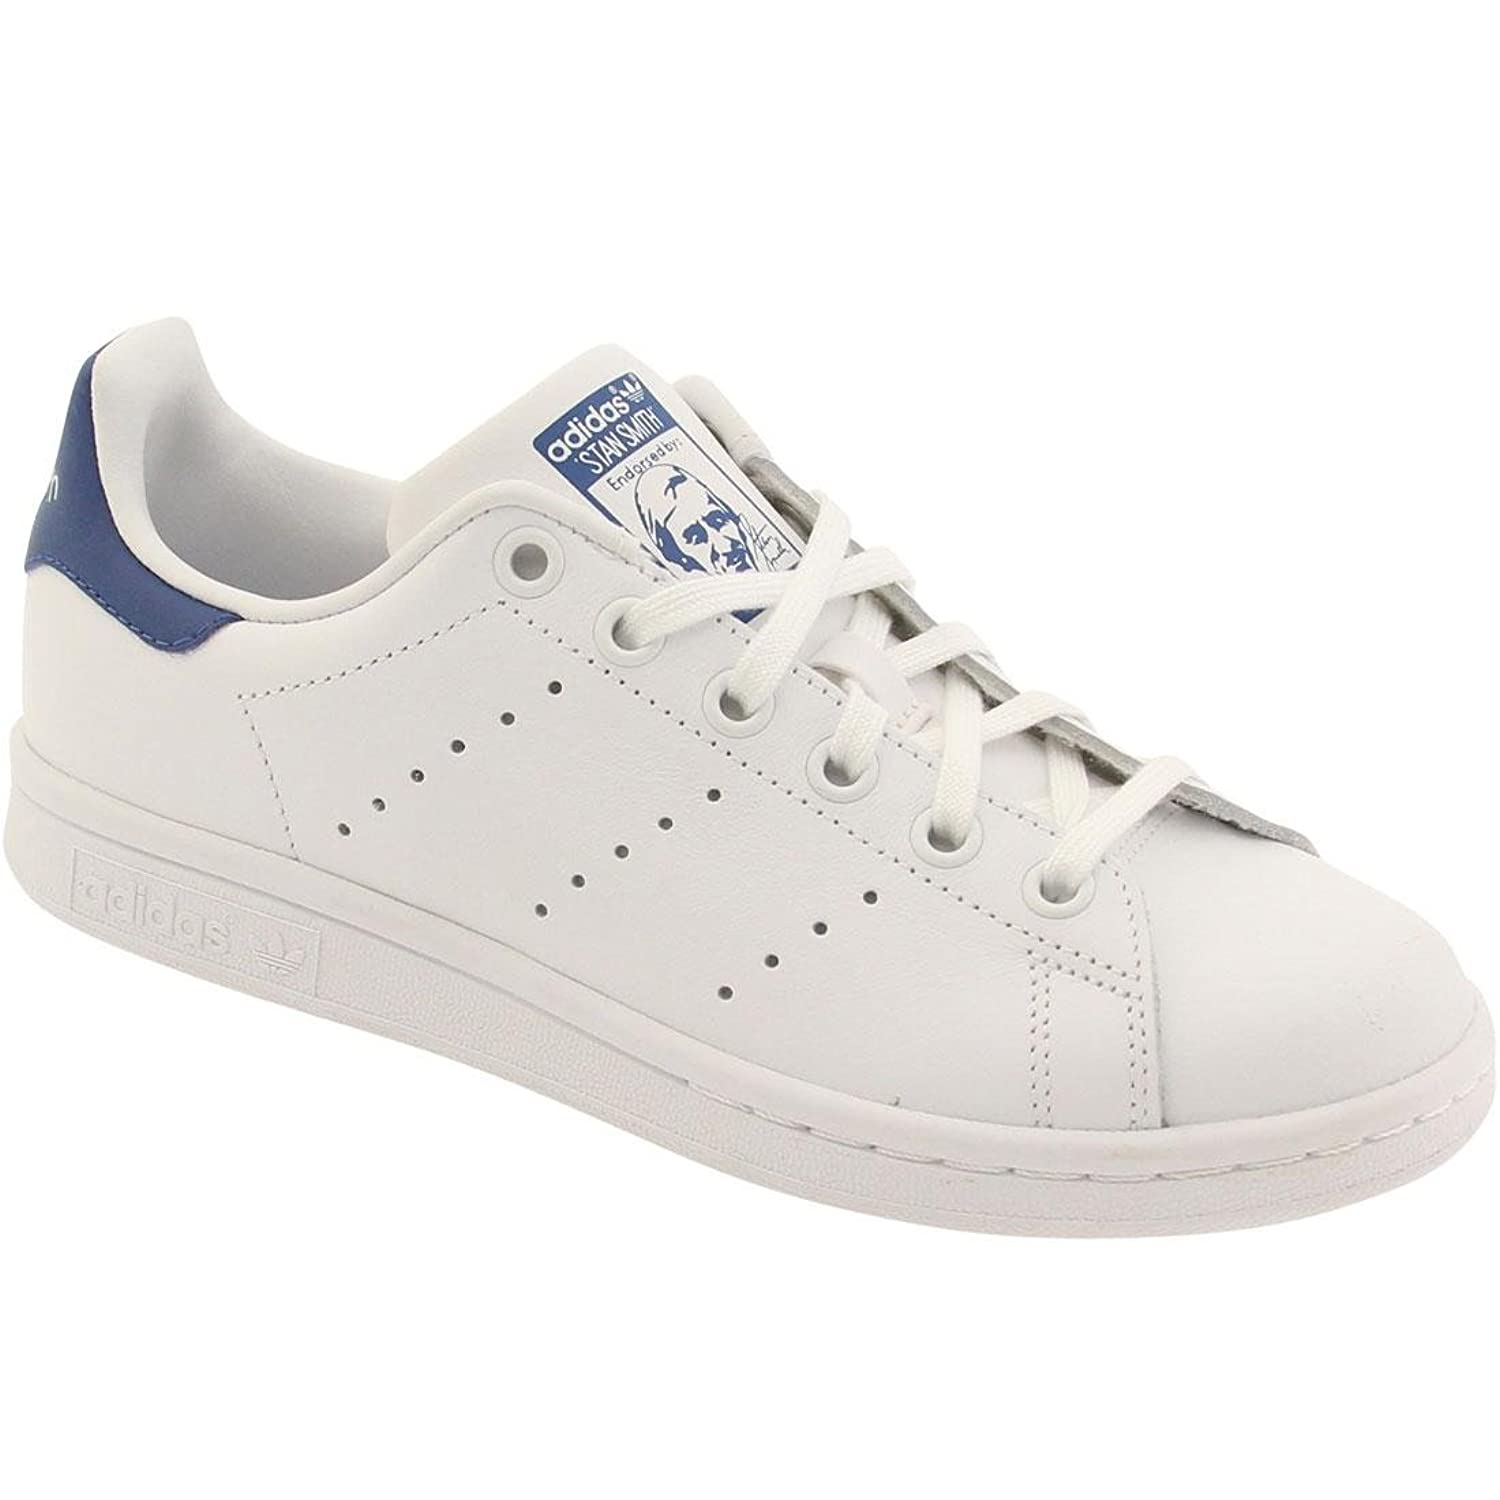 stan smith ragazzi > > adidas stan smith blu